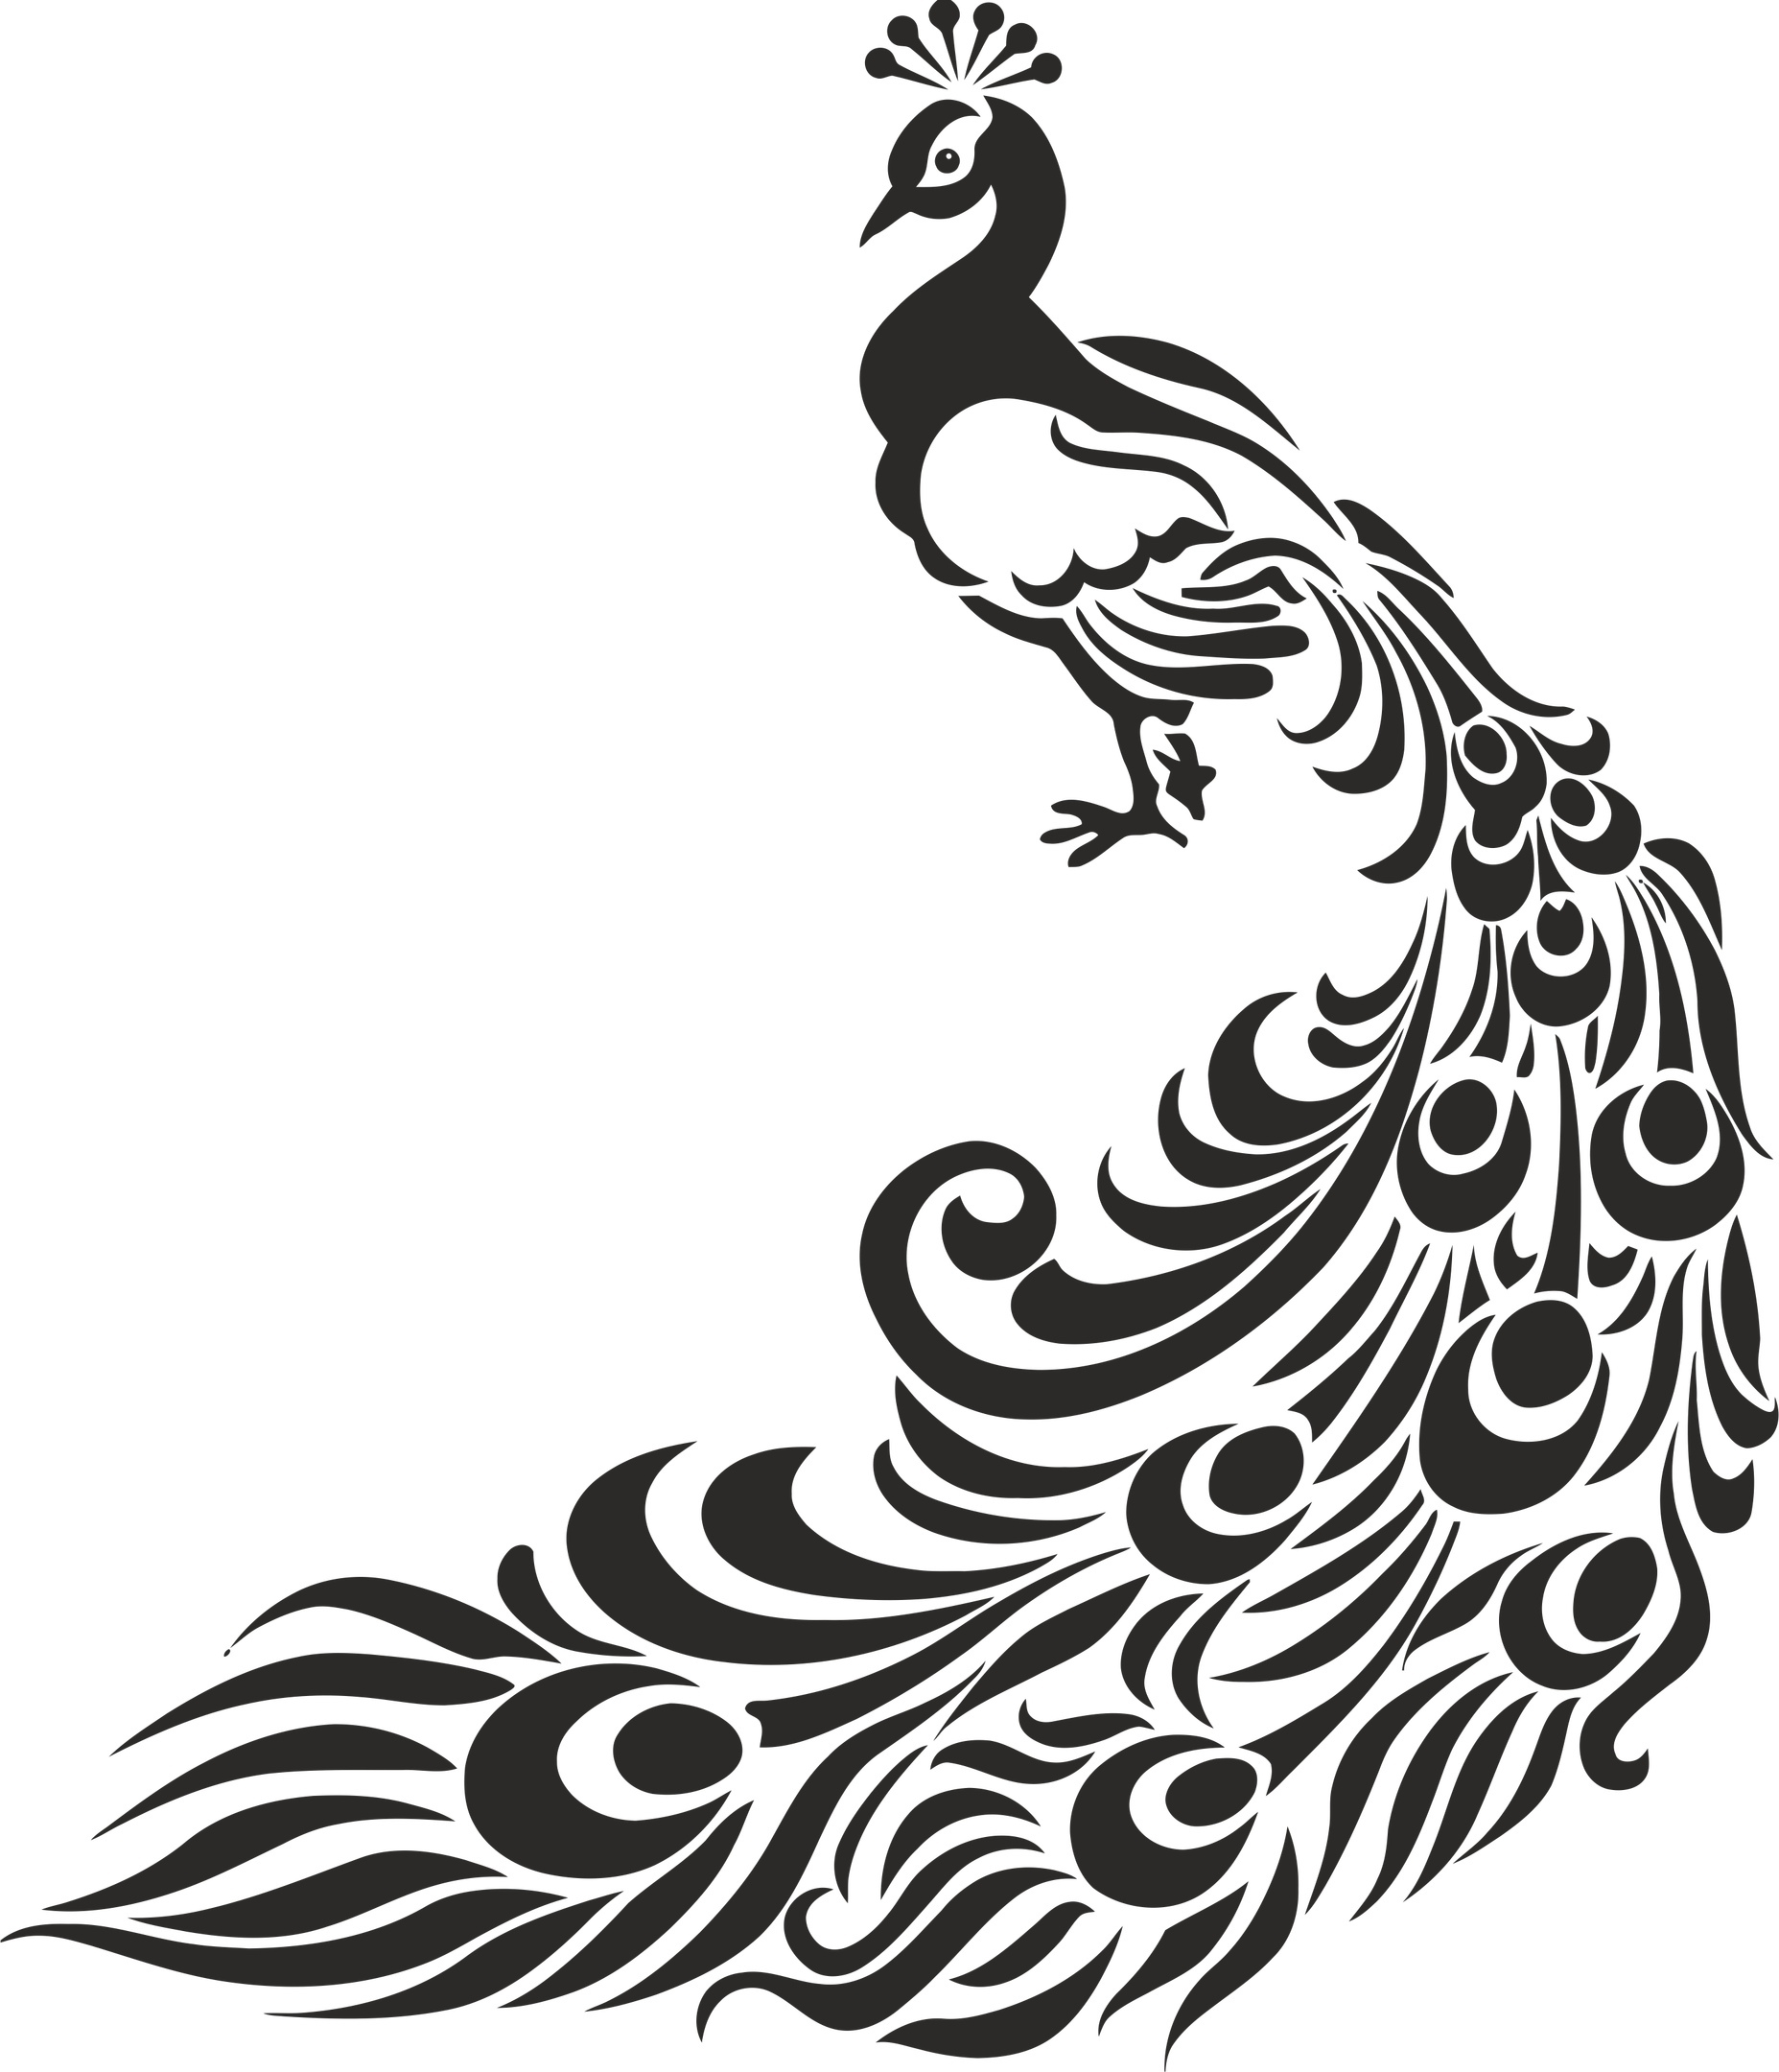 Peacock Tribal Stencil Free CDR Vectors Art